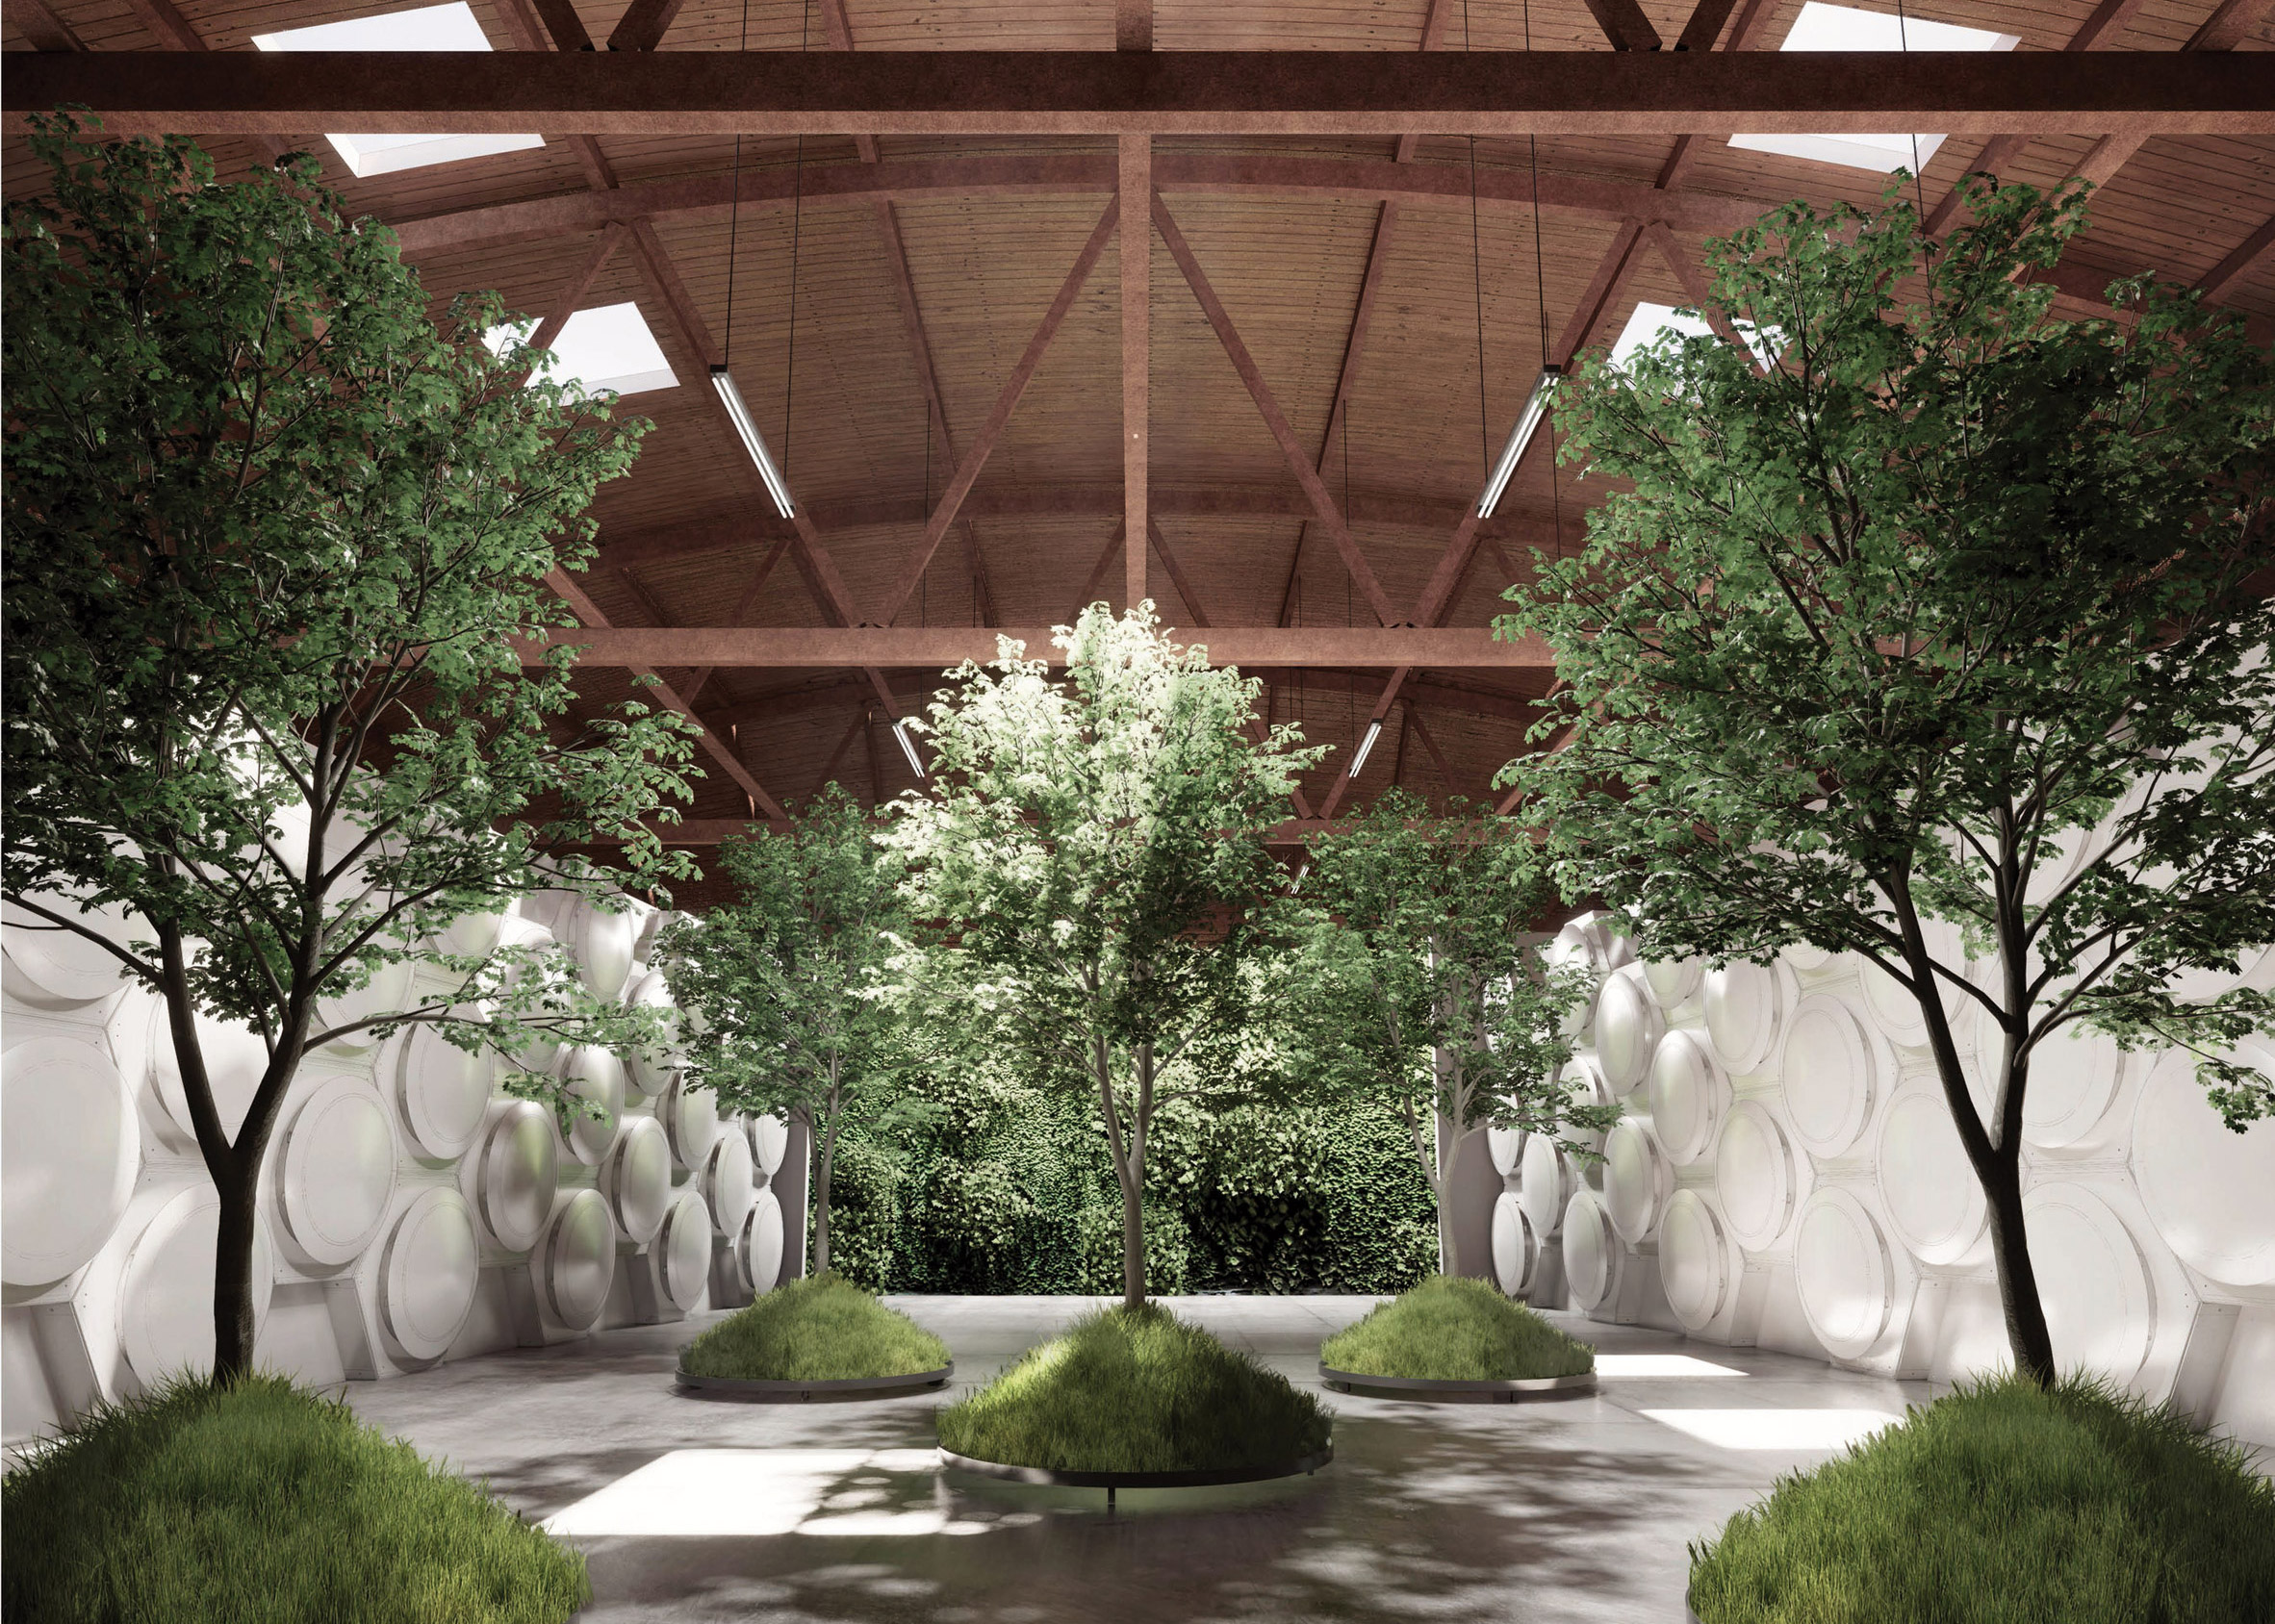 Olson Kundig unveils Recompose facility for composting human bodies